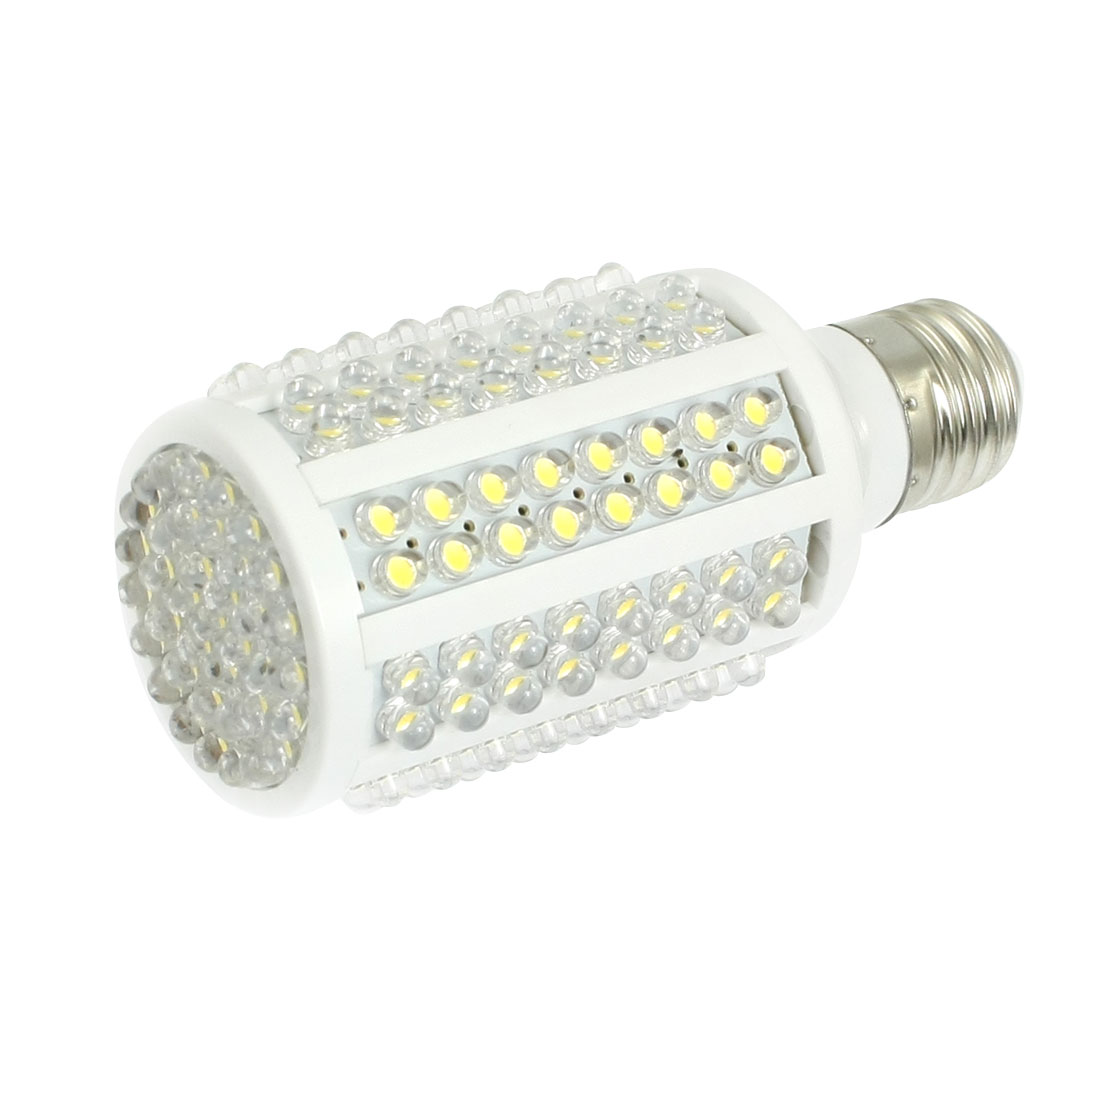 E27 6W 220V 166 LED Warm White Corn Bulb Light Lamp 3000K